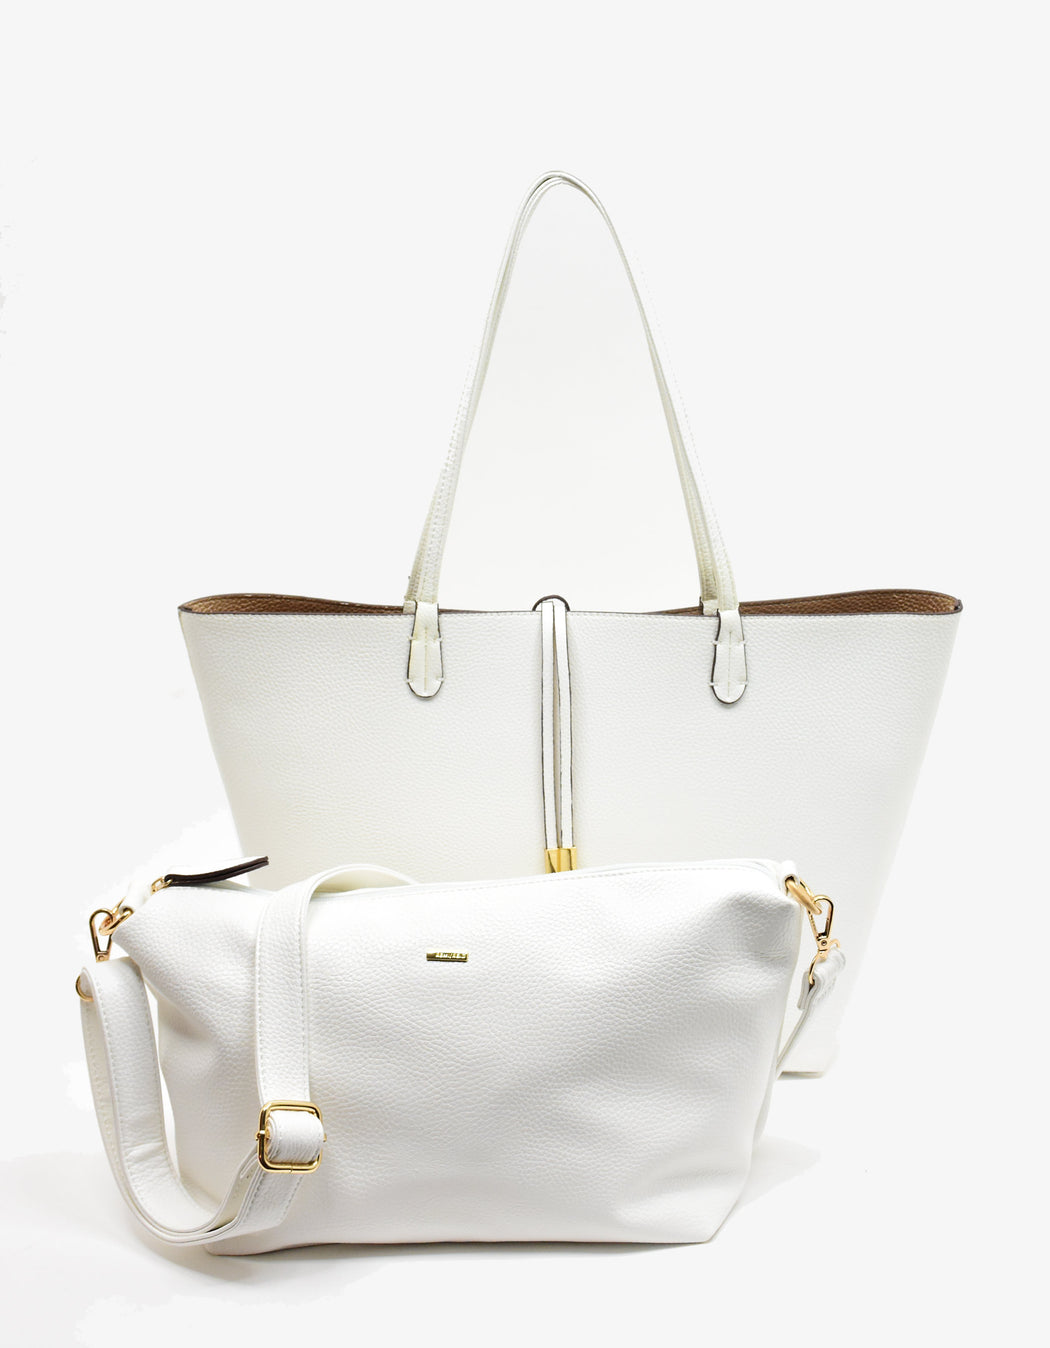 DEPARTURE TOTE WHITE/GOLD